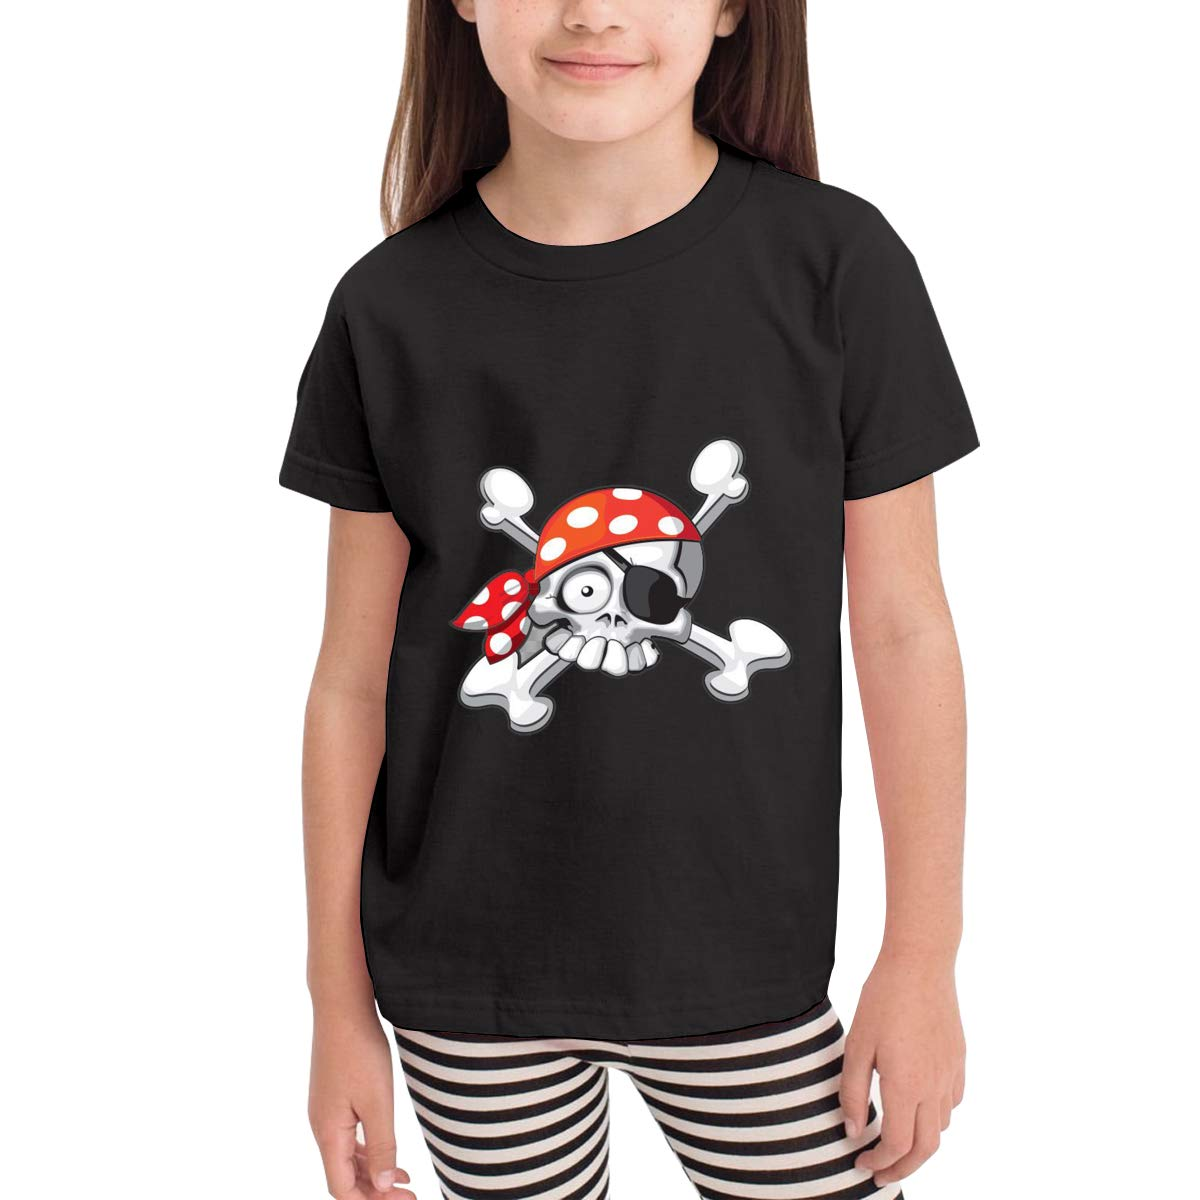 Cartoon Skull Crossbone with A Red Cap 100/% Cotton Toddler Baby Boys Girls Kids Short Sleeve T Shirt Top Tee Clothes 2-6 T